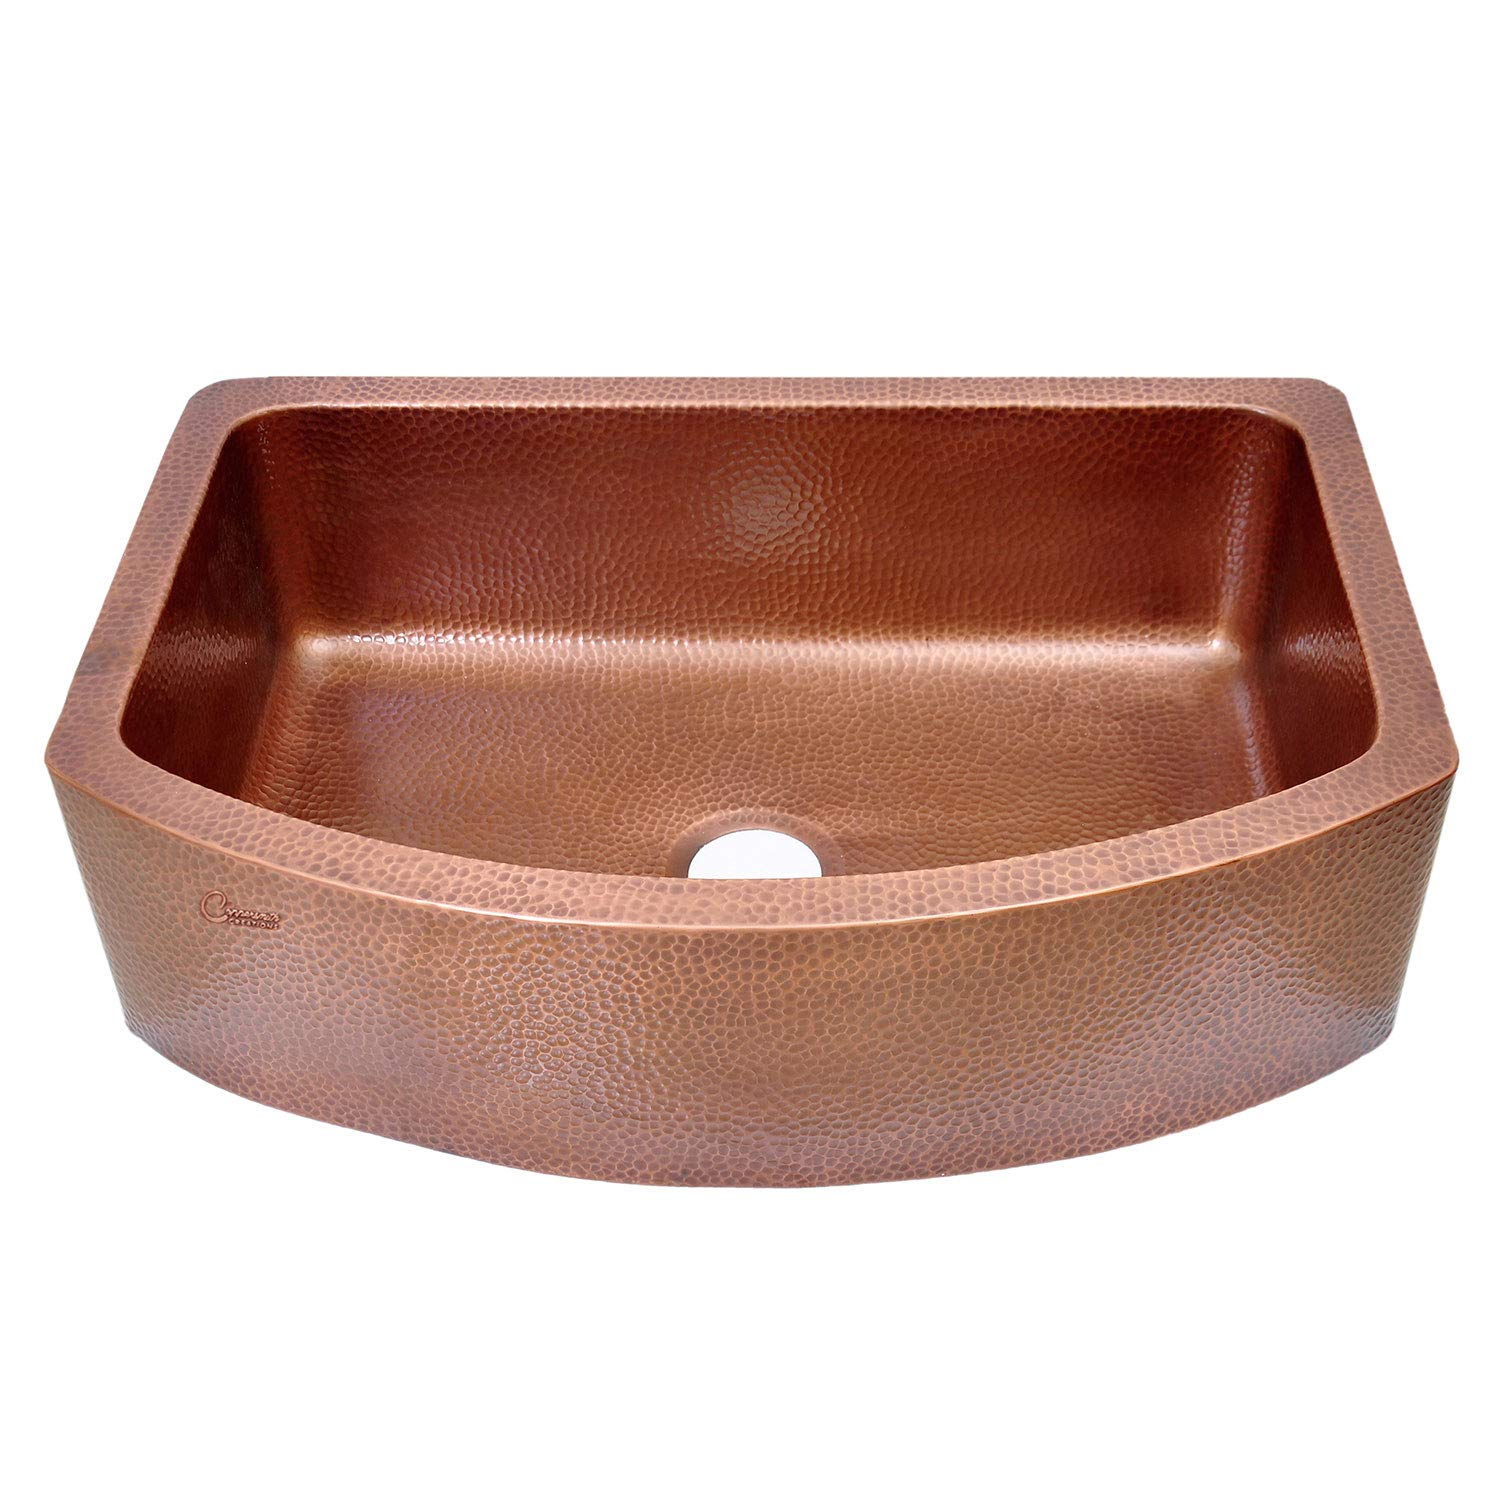 Coppersmith Creations 33 x 22 x 9 inch D Shape Copper Farmhouse Sink Antique Hammered in 16 Gauge (Best Quality Best Price) by Coppersmith Creations